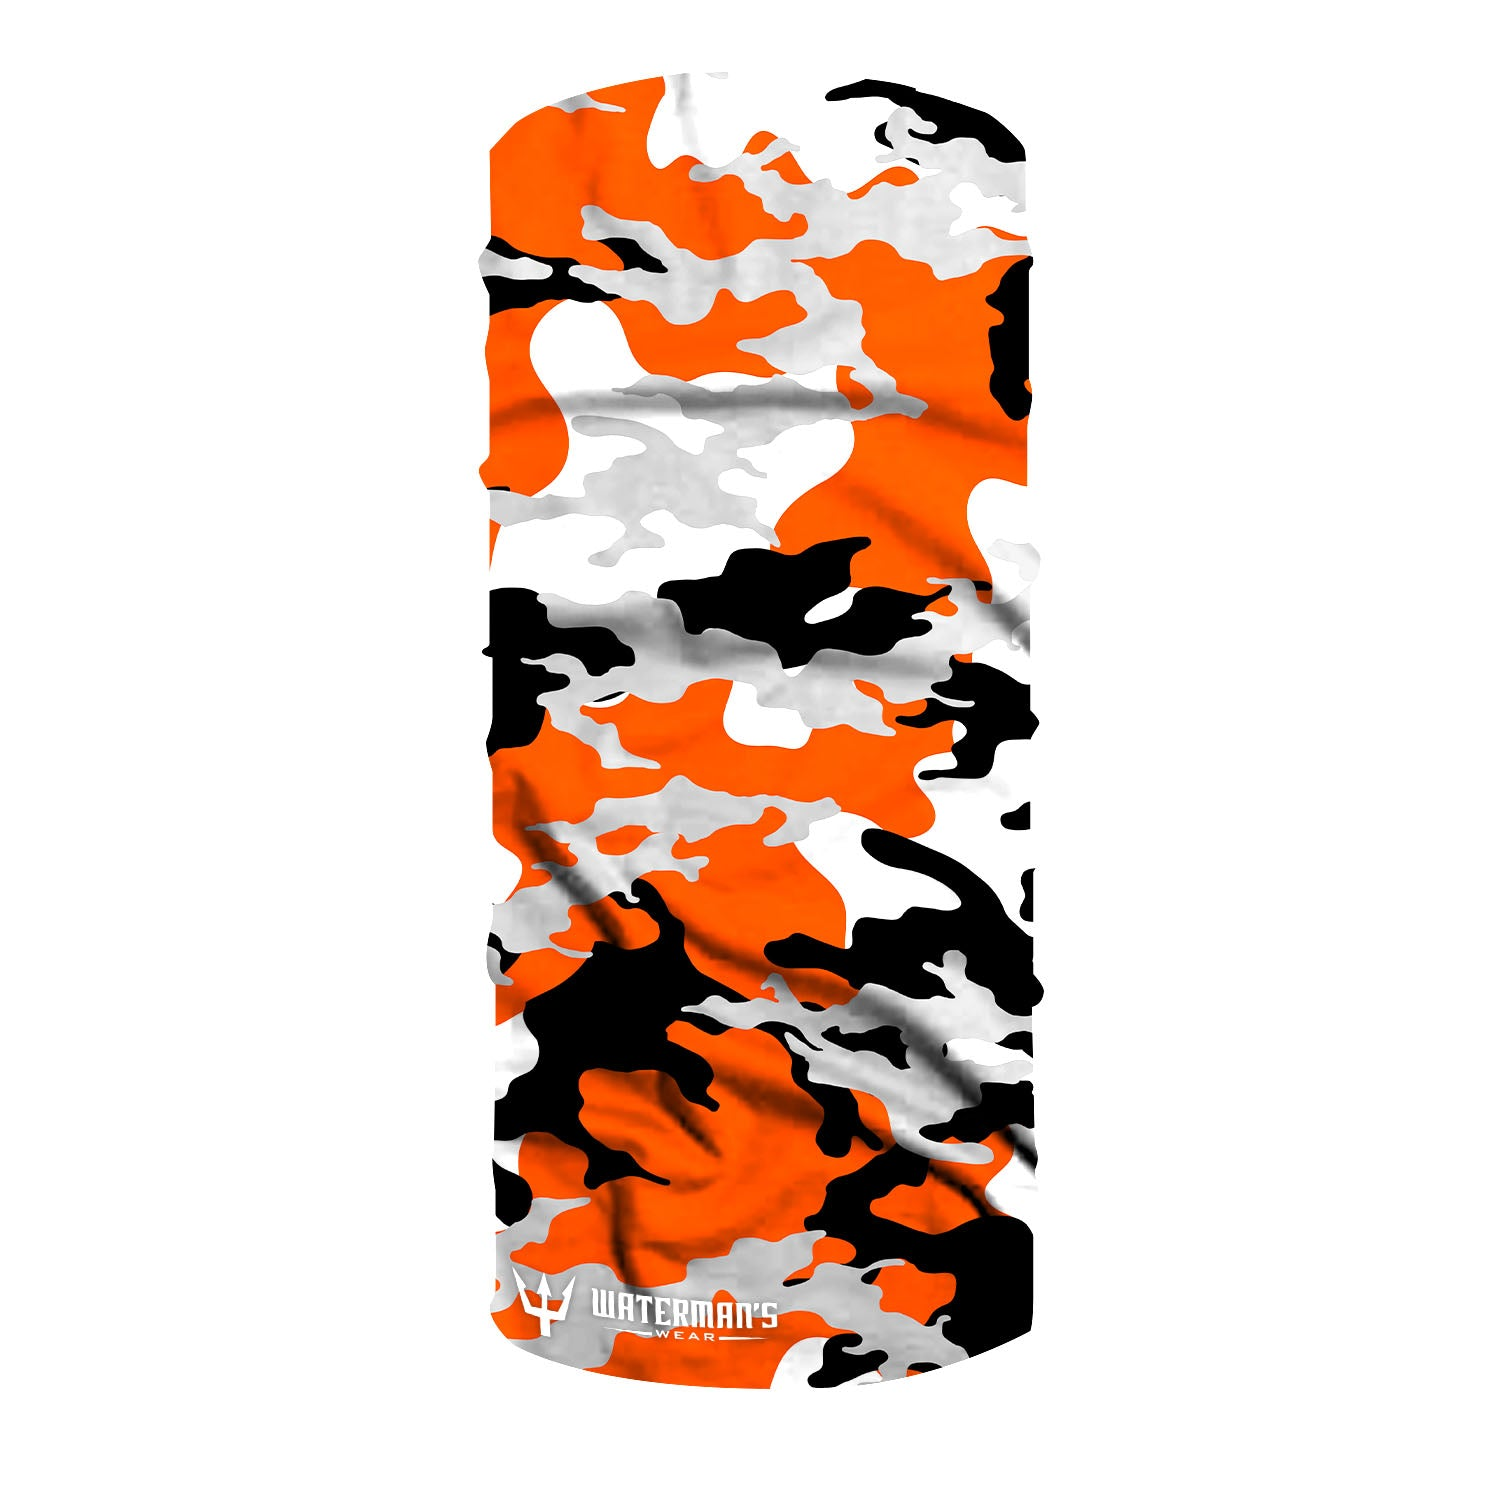 Waterman's Wear Orange Camo Face Mask Made in the USA UPF50 Sun Protection